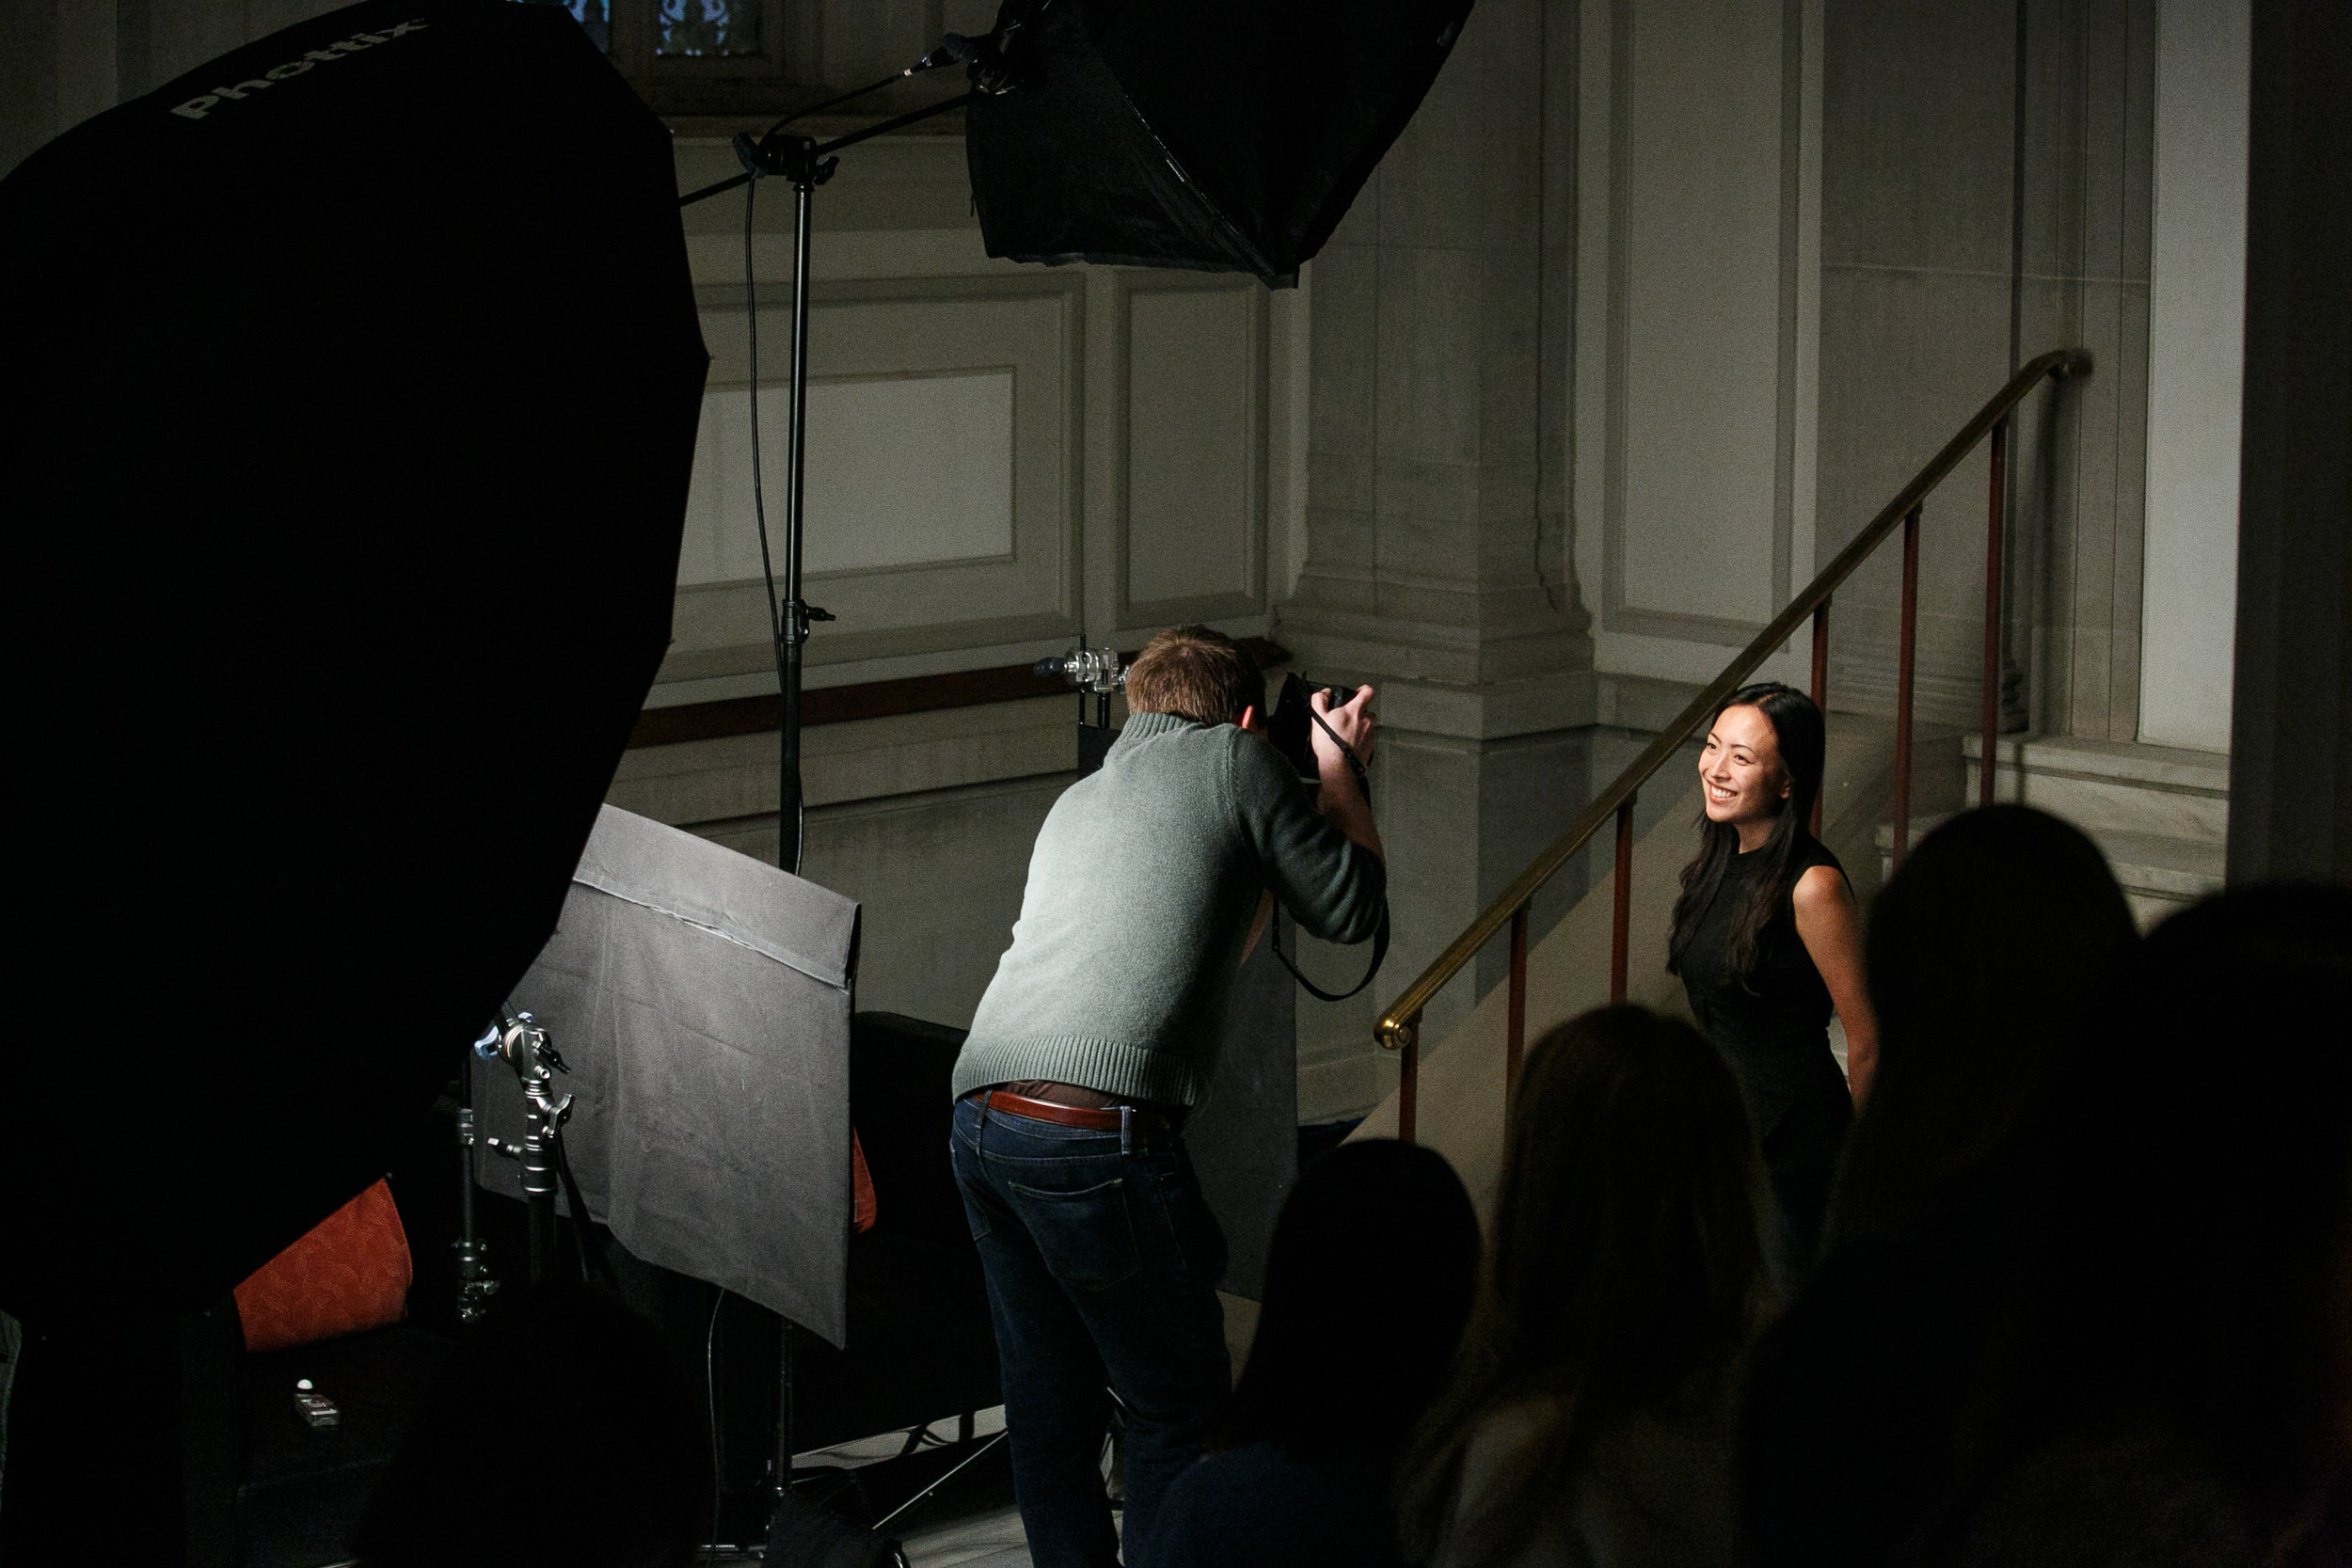 Behind the Scenes of my portrait setup